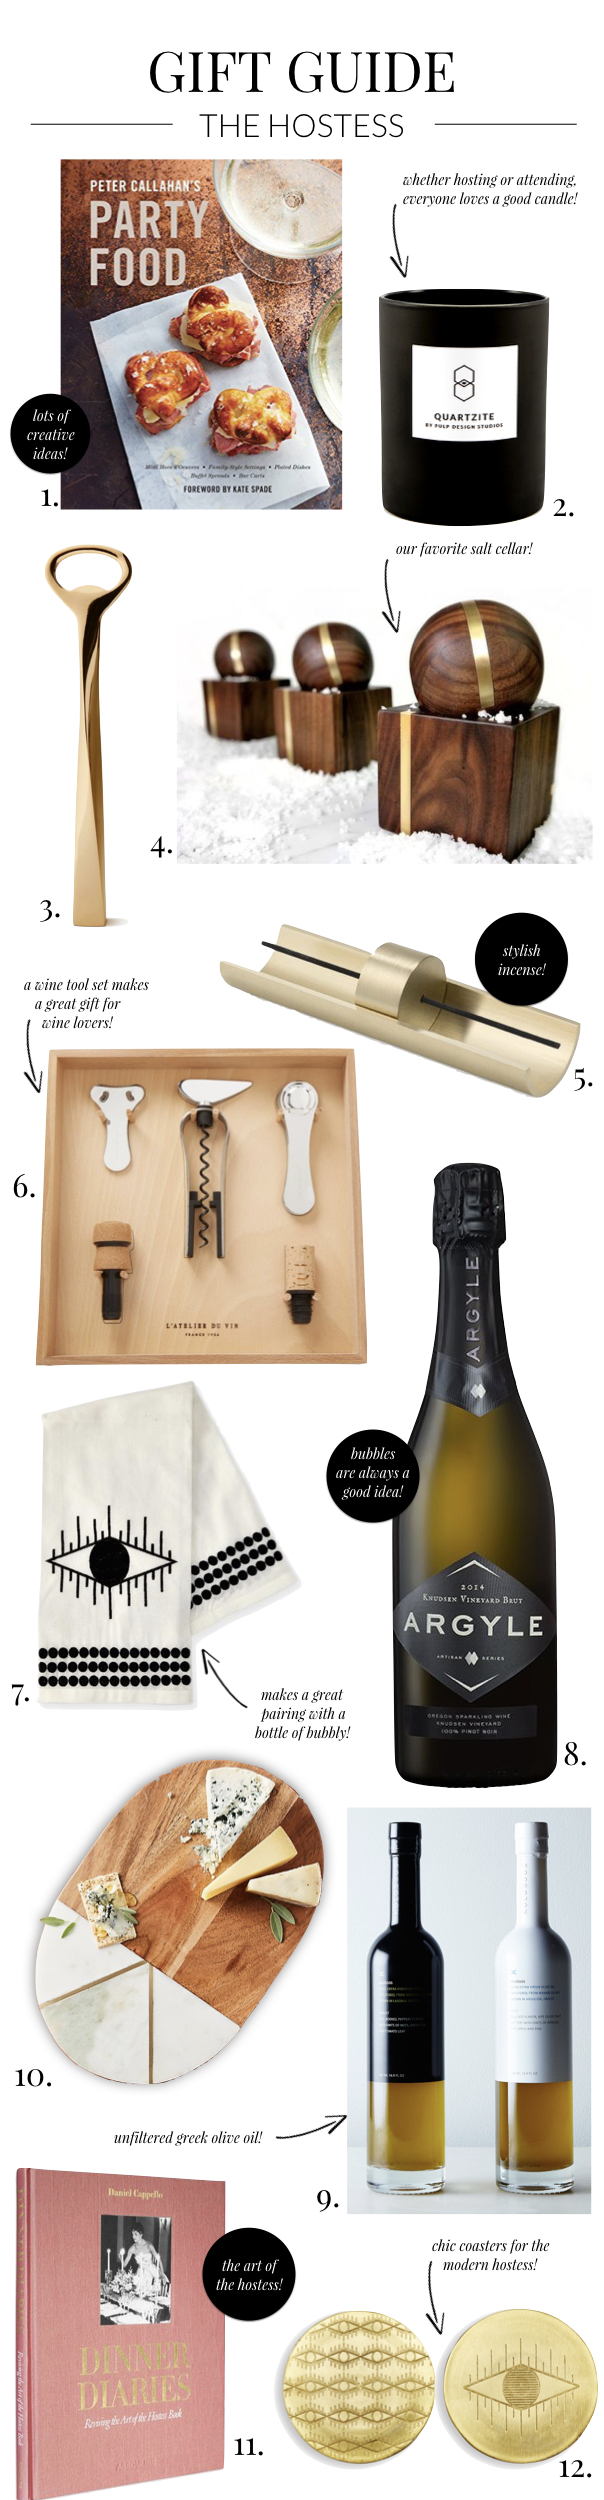 gift guide the hostess 2018.jpeg.001